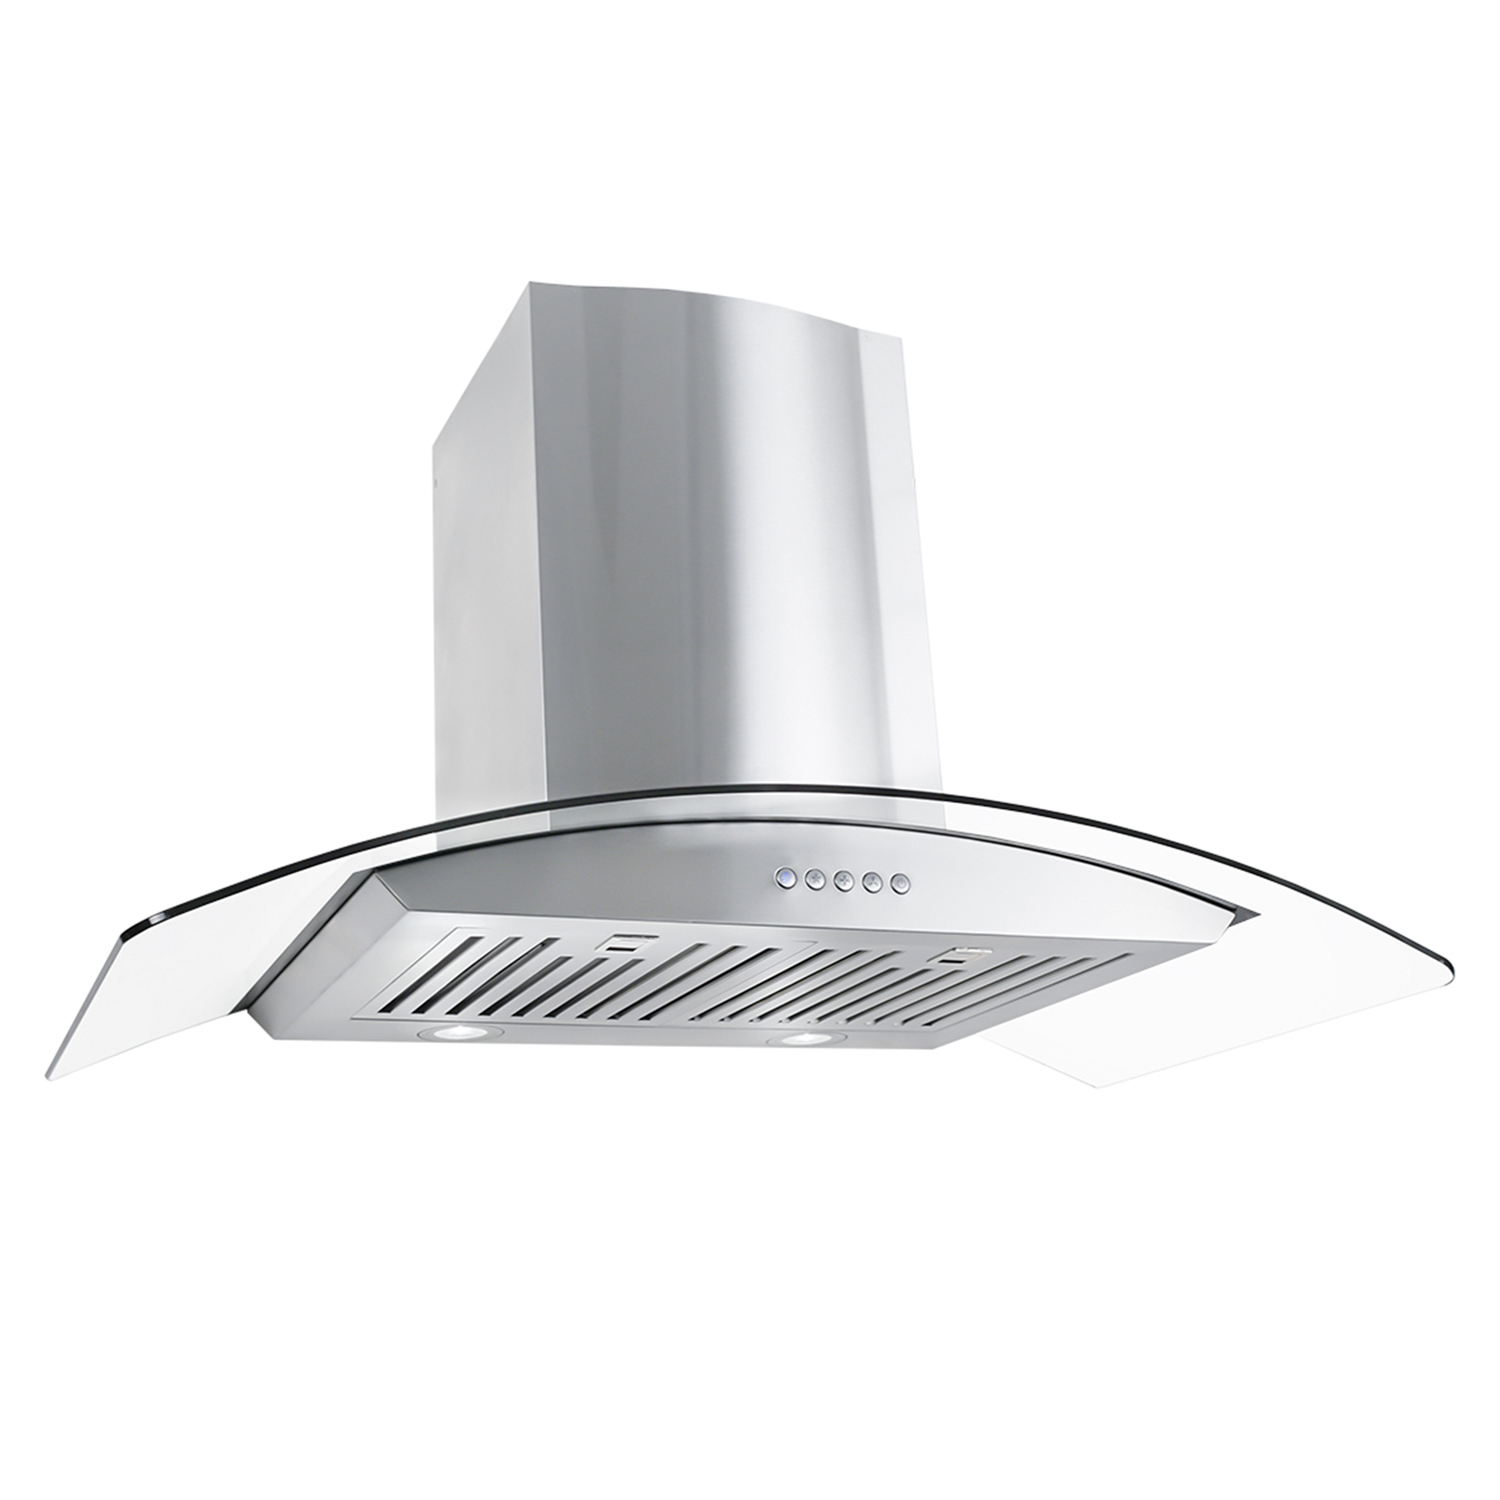 Wall Exhaust Hood ~ In wall mount range hood cosmo appliances cos a